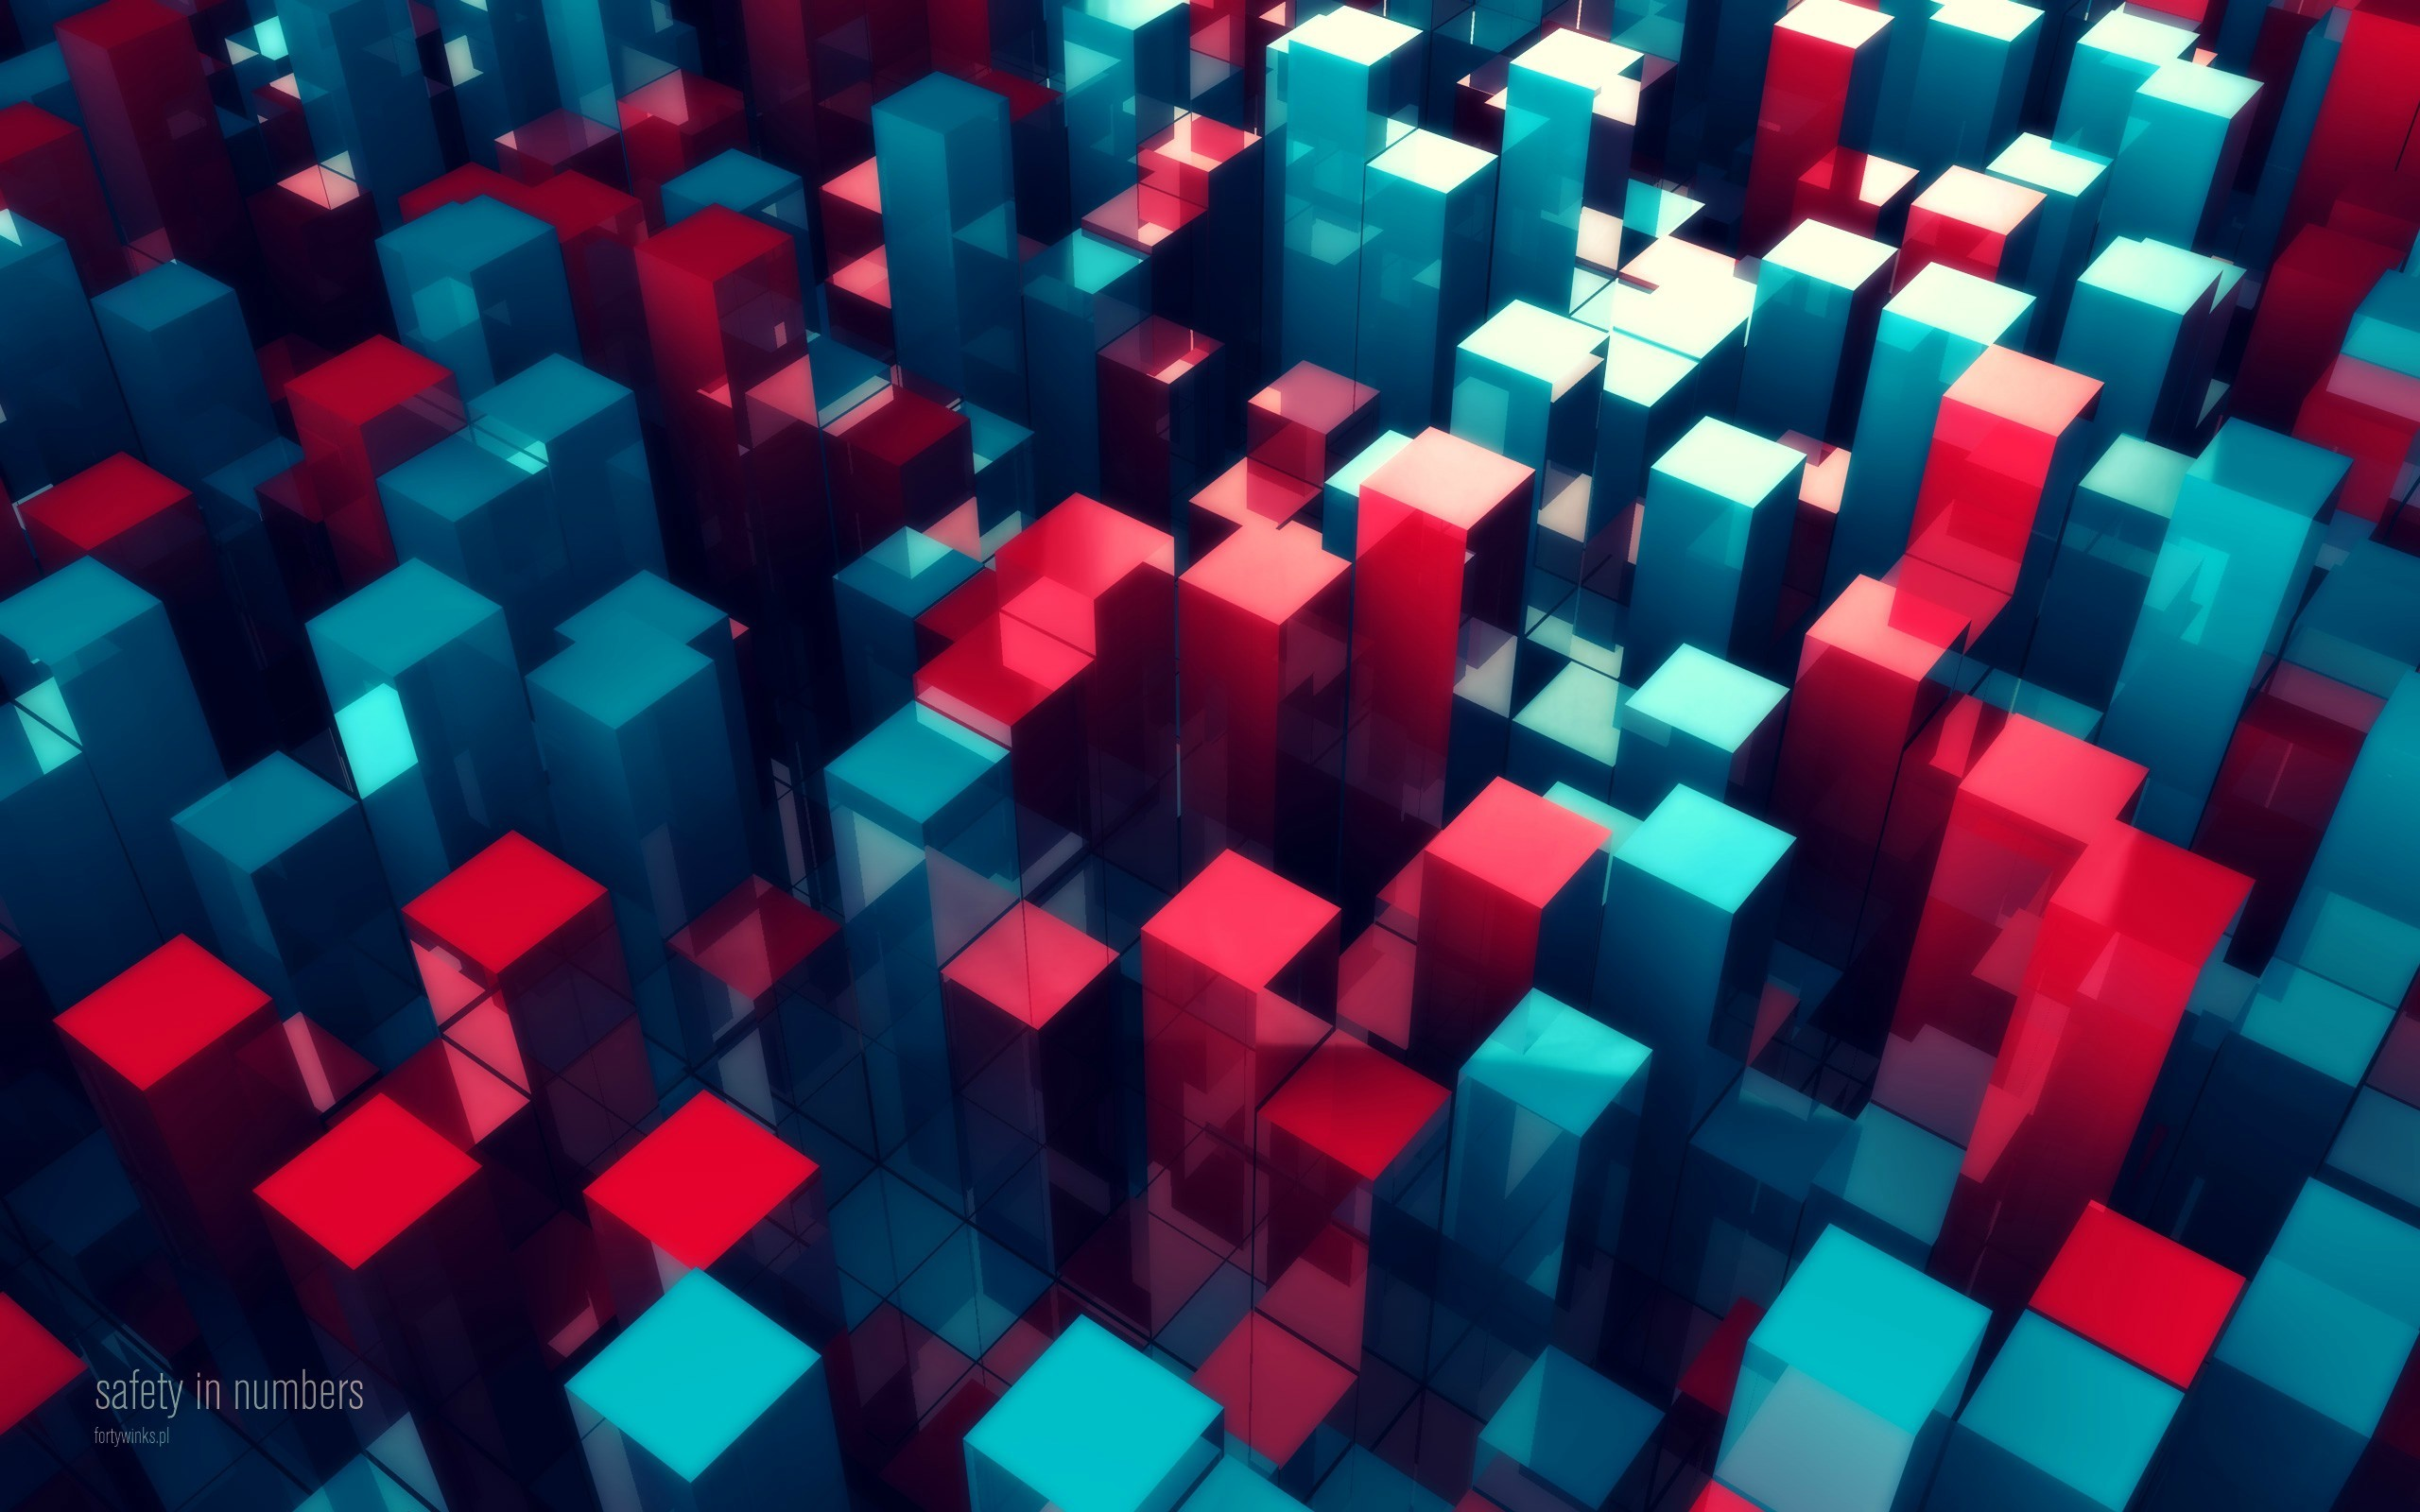 2560x1600 Very cool red and blue wallpaper, check it out (2550x1600) | Wallpaper .